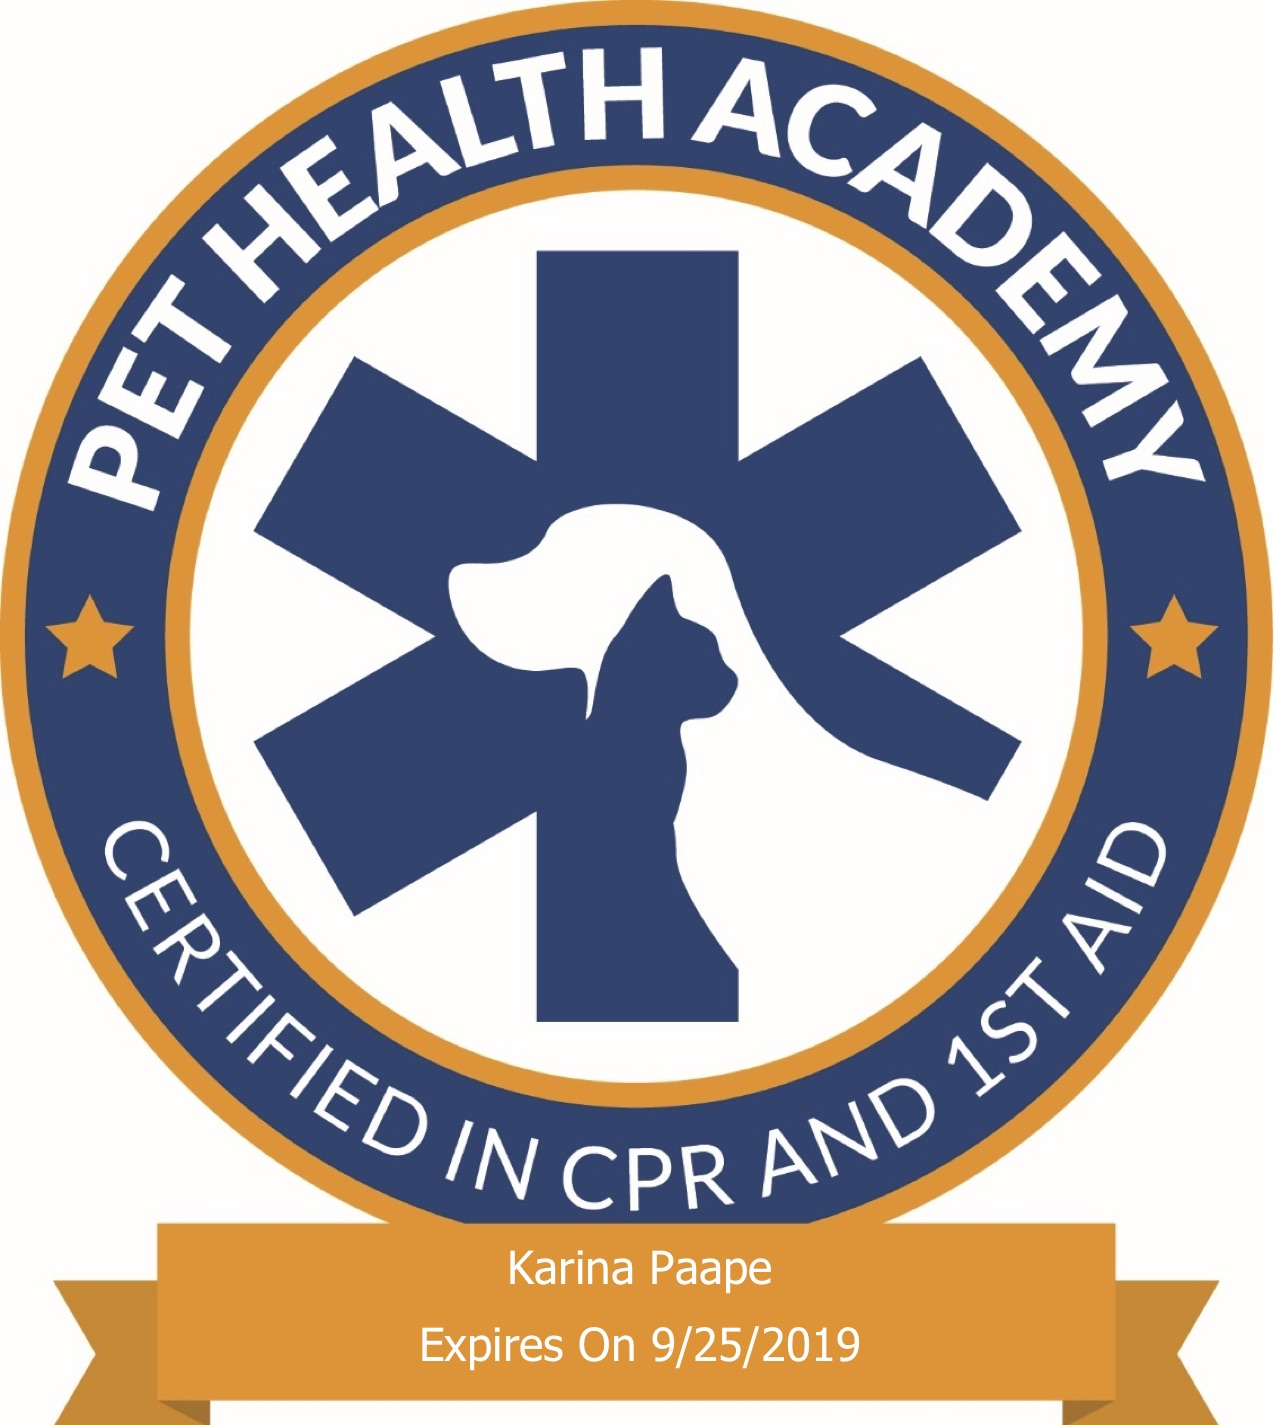 Pet Health Academy